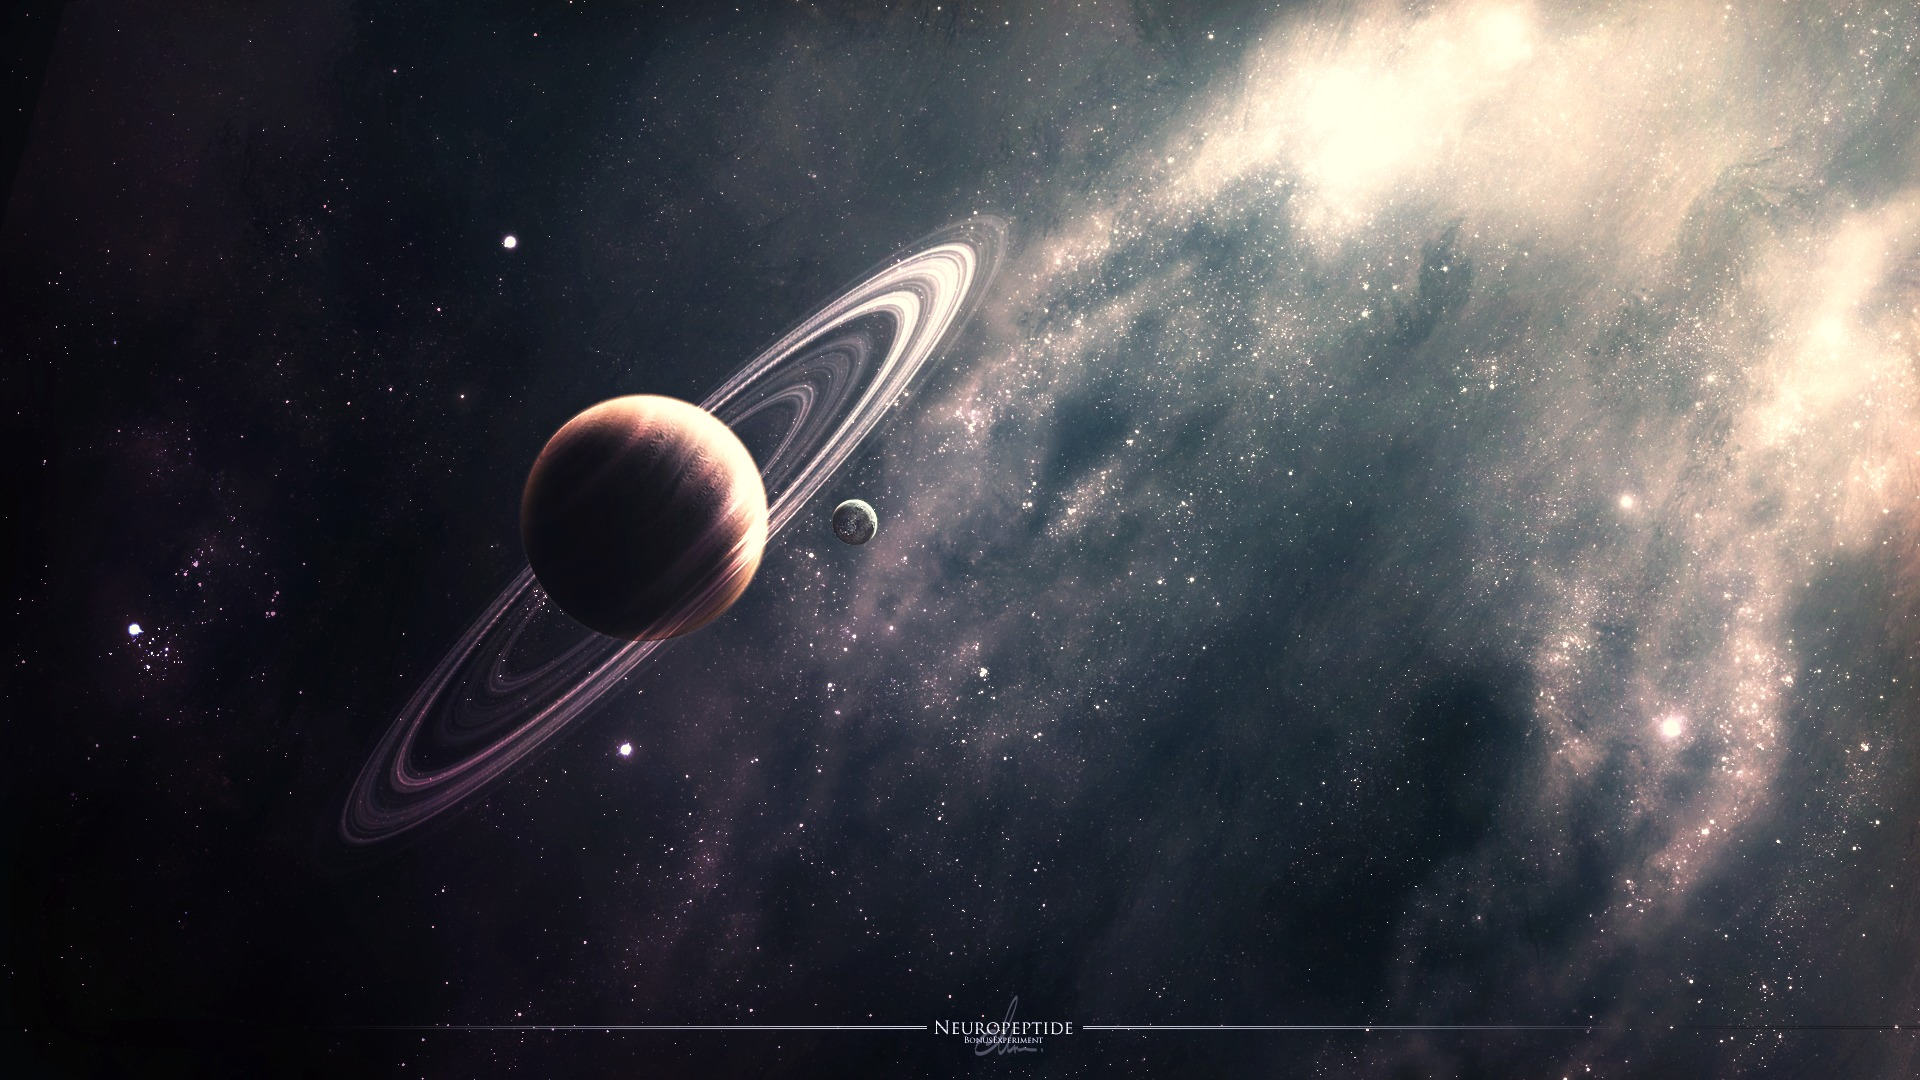 Space planet rings nebula star wallpaper | 1920x1080 ...